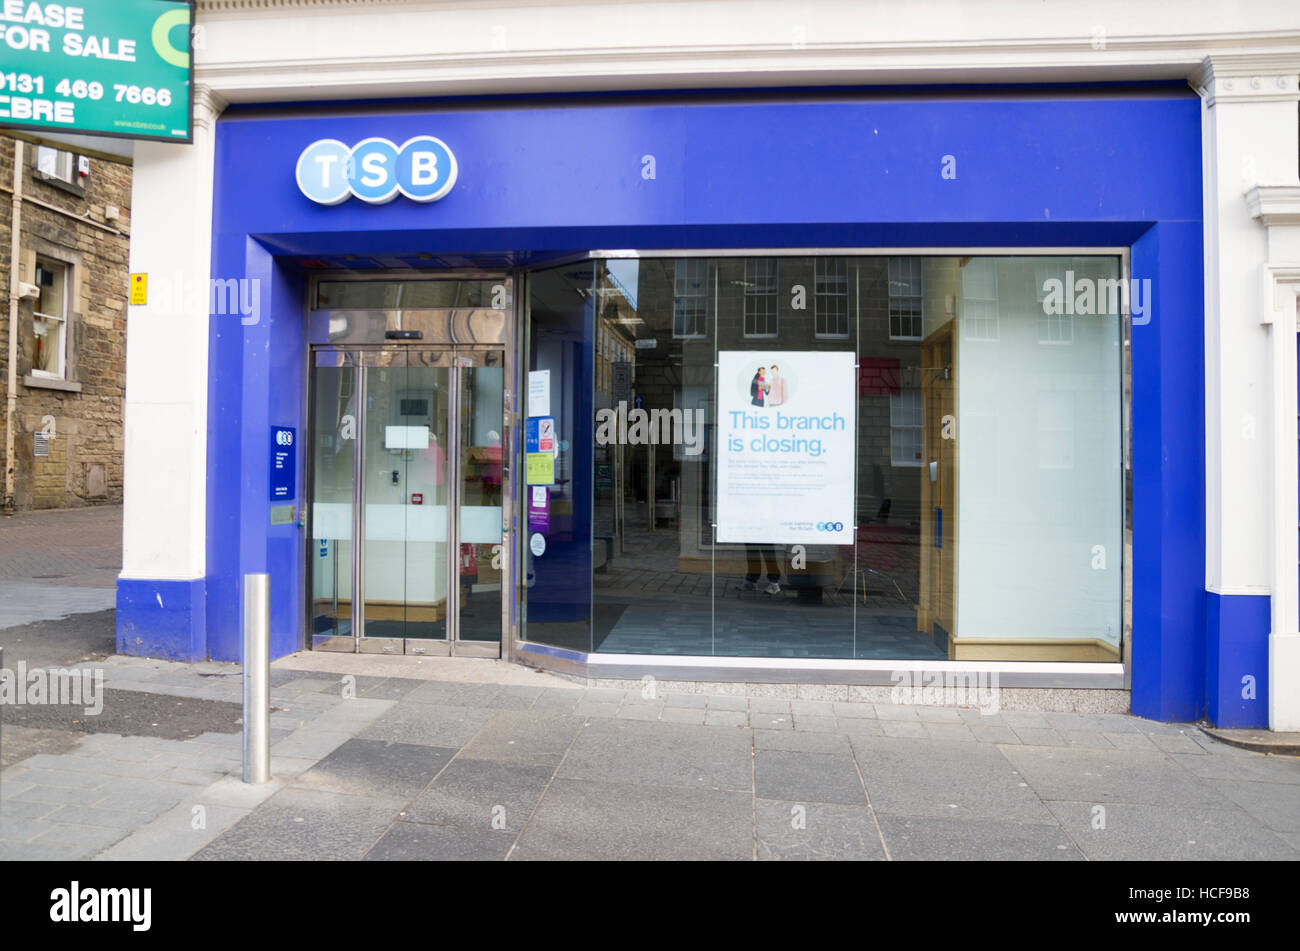 'This branch is closing' sign for a branch of TSB Bank, - Stock Image